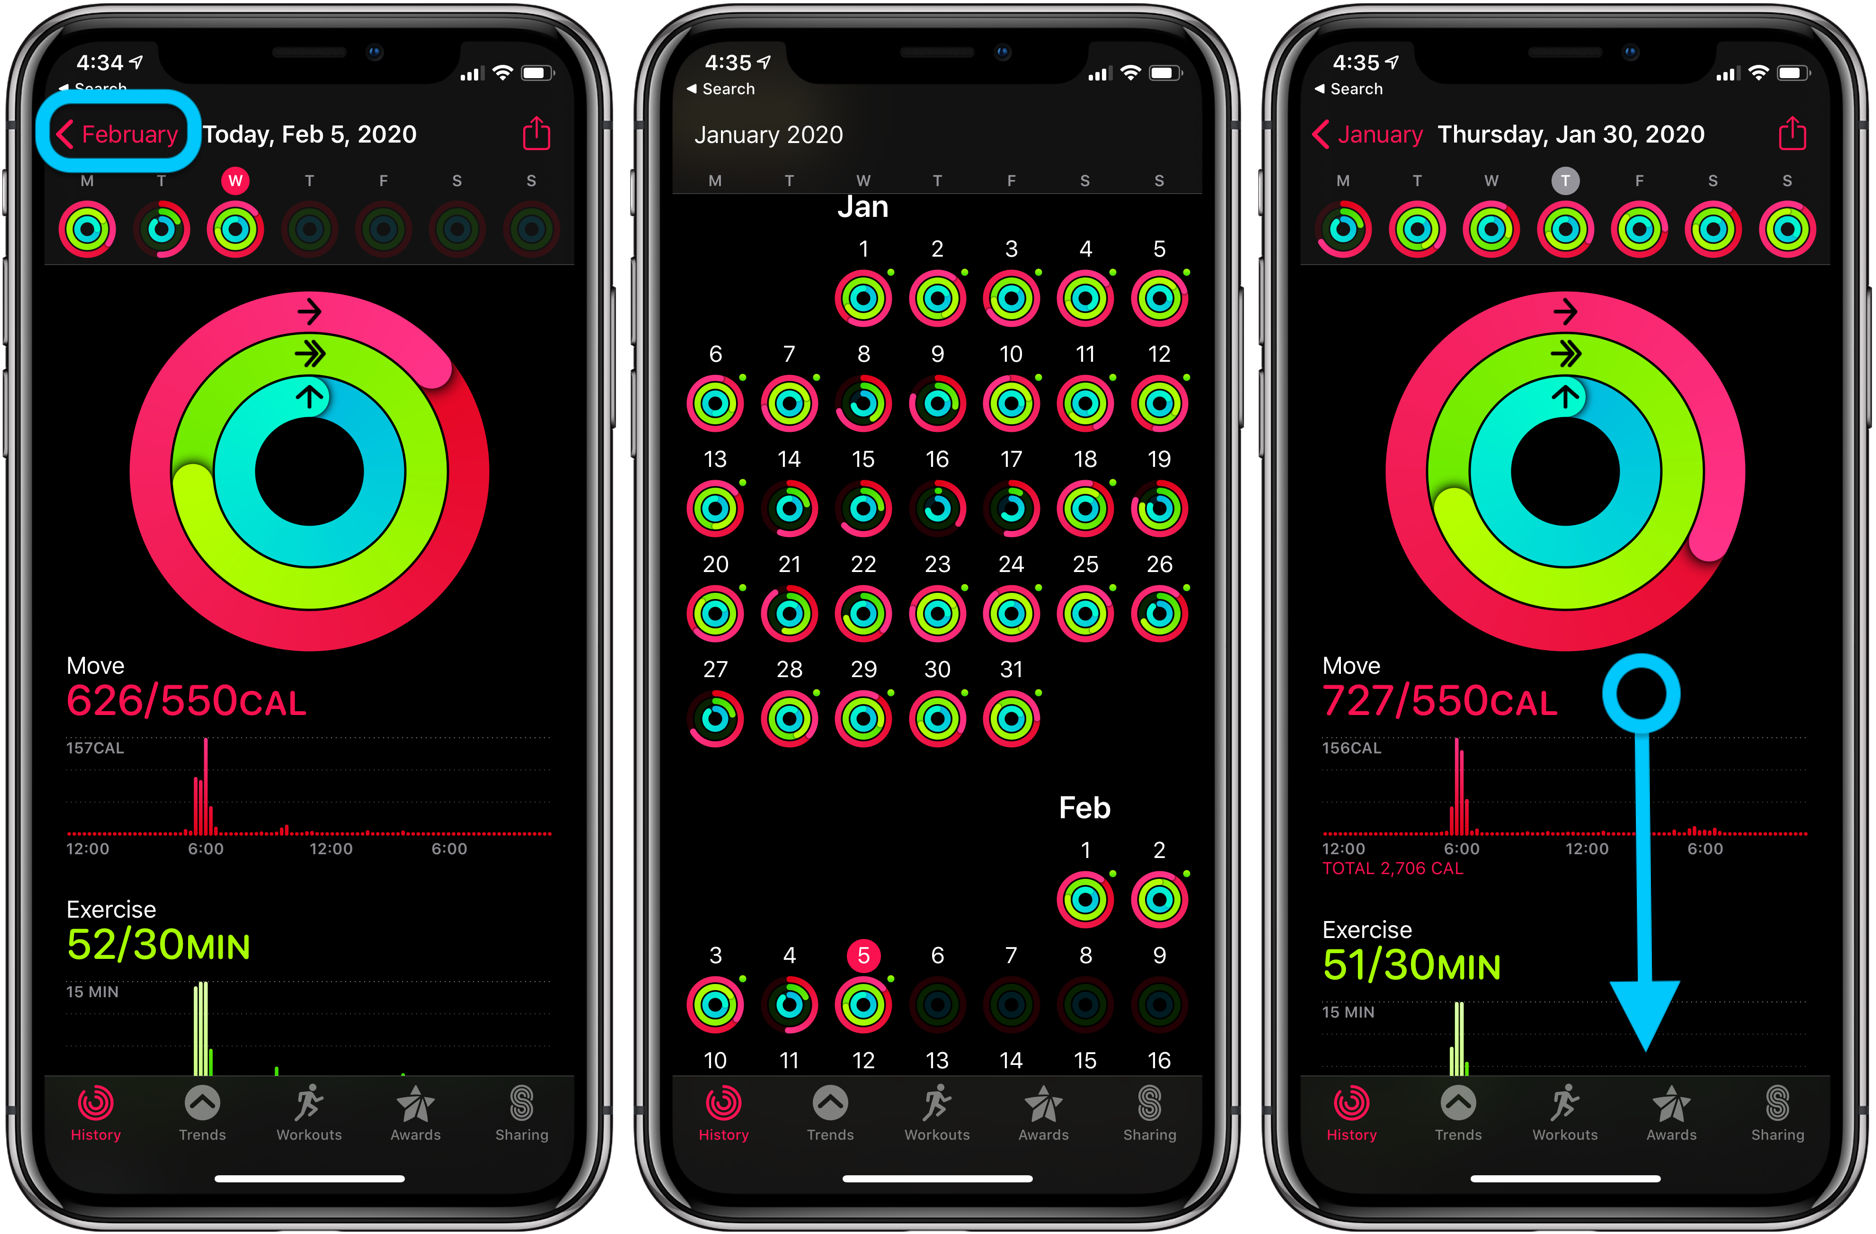 Apple Watch how to see workout history walkthrough 3